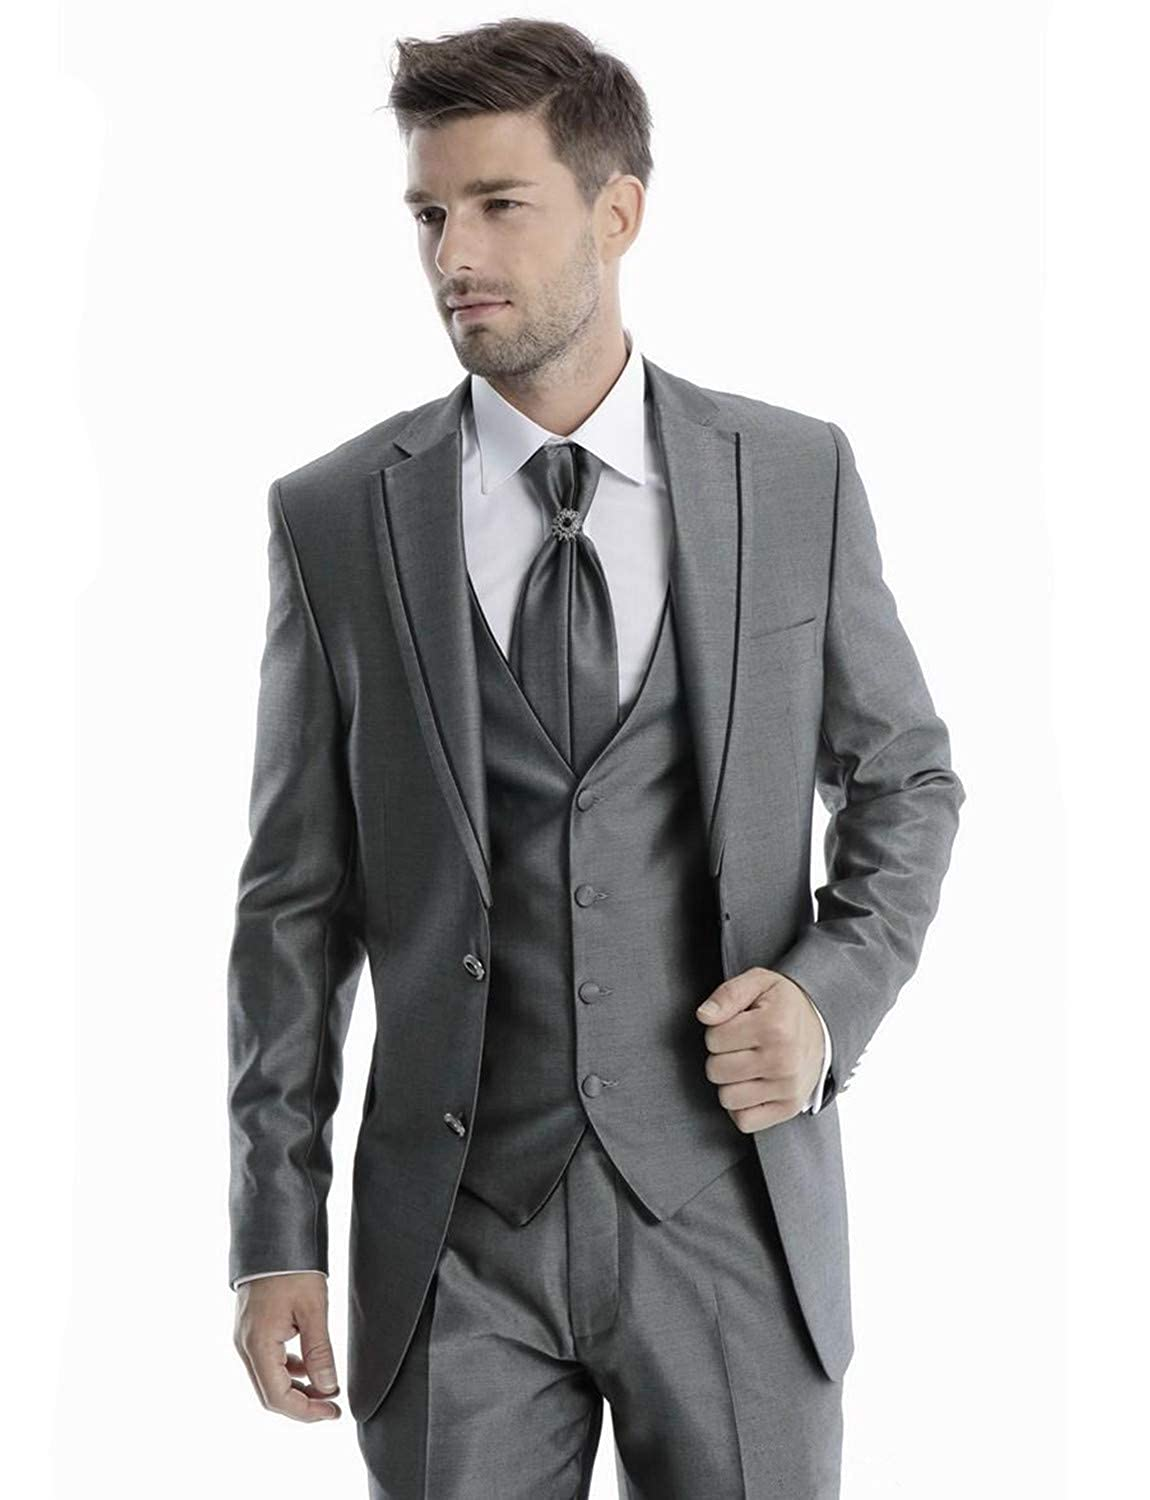 0e137984e56e Mens 3 Piece Tuxedos Vintage Groomsmen Wedding Suit Complete Outfits(Jackets+Vest+Trousers)  at Amazon Men s Clothing store